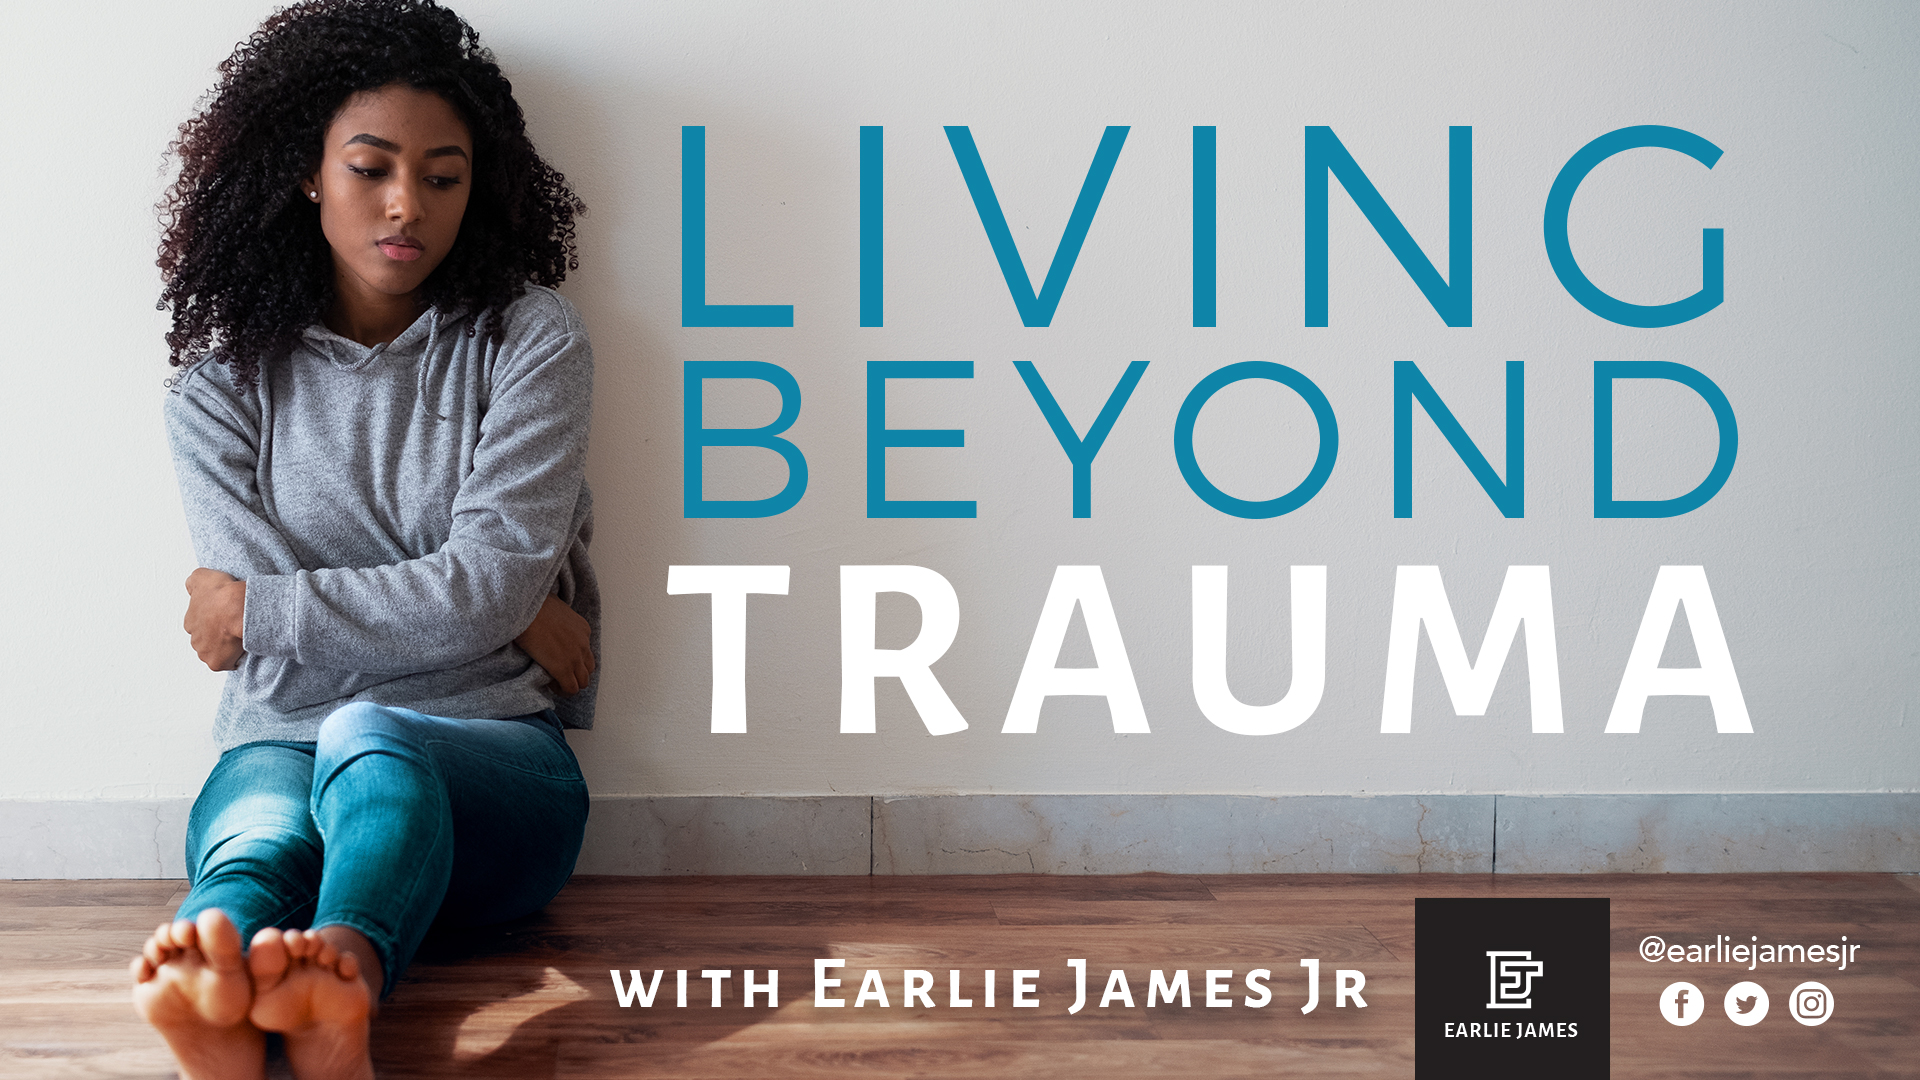 Reload-Beyond-Trauma-with-Earlie-James-still